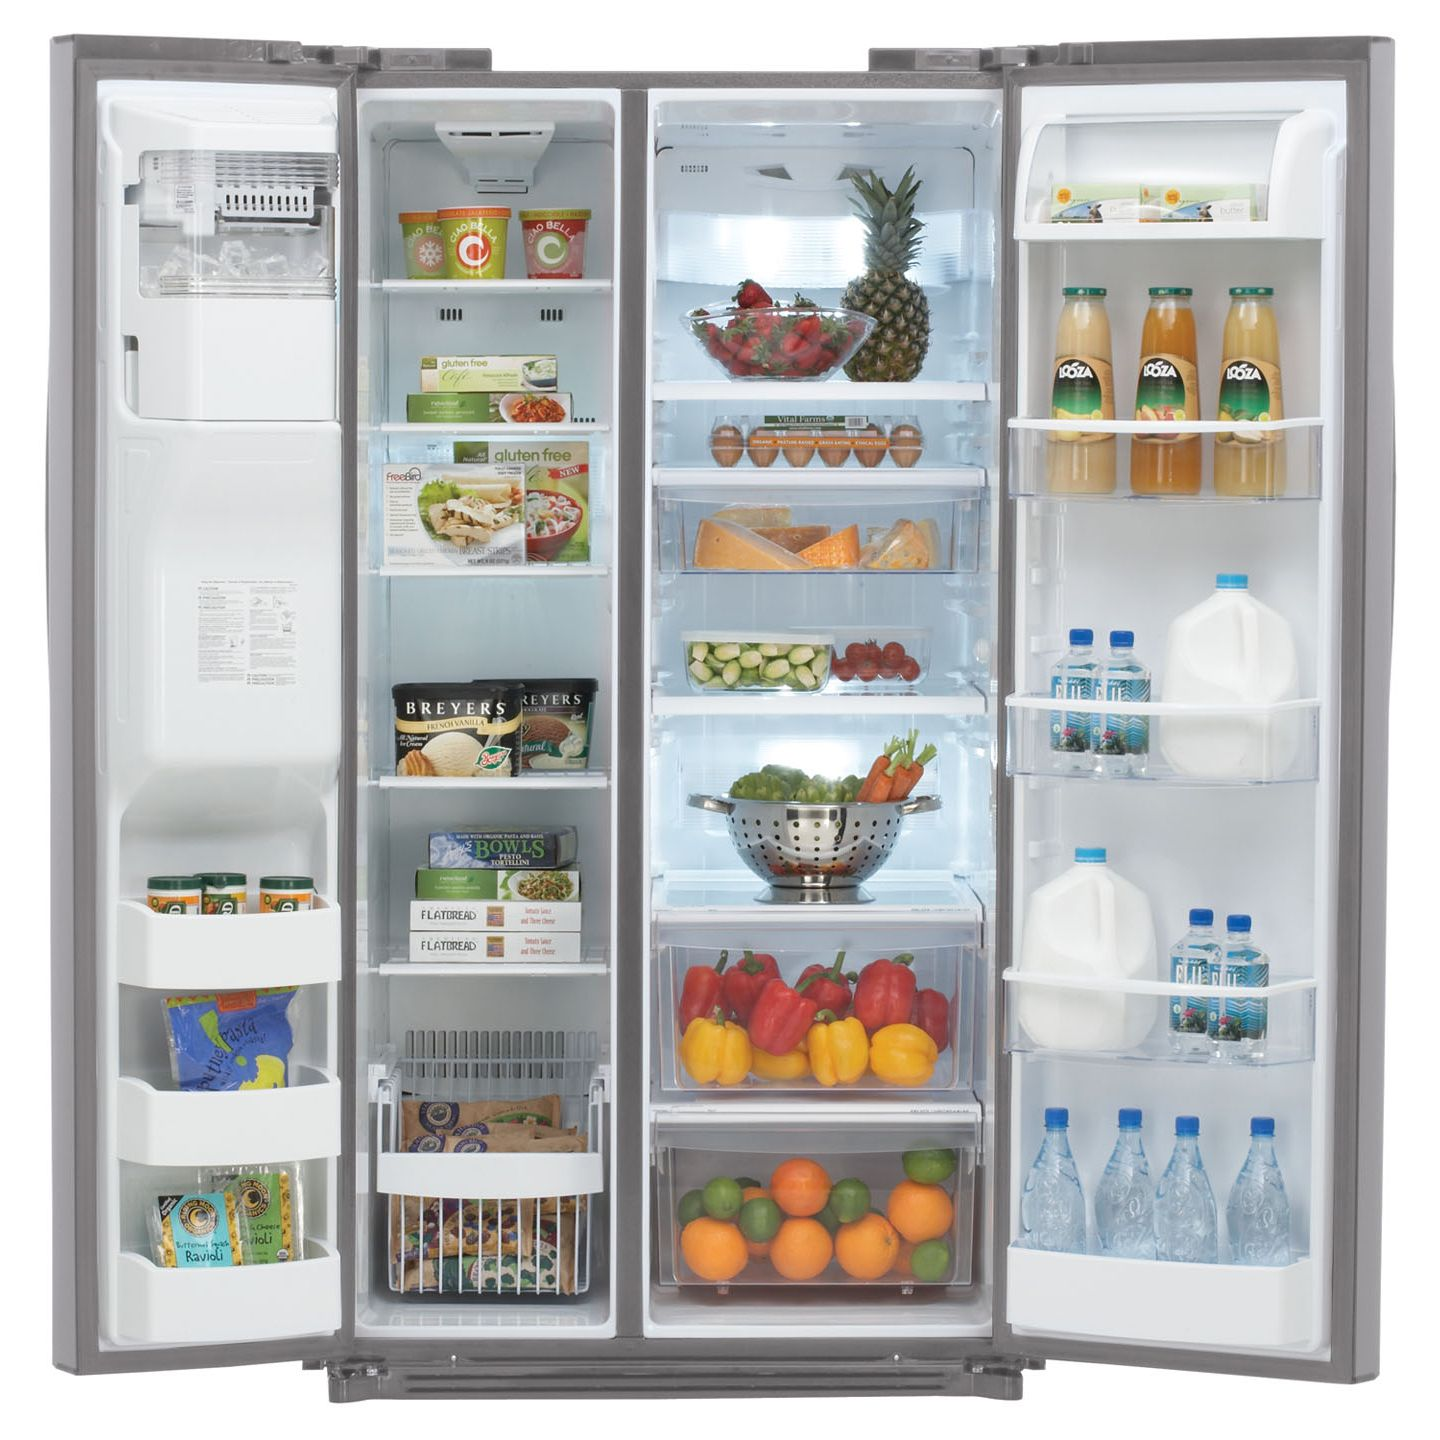 Kenmore 26.5 cu. ft. Side-by-Side Refrigerator